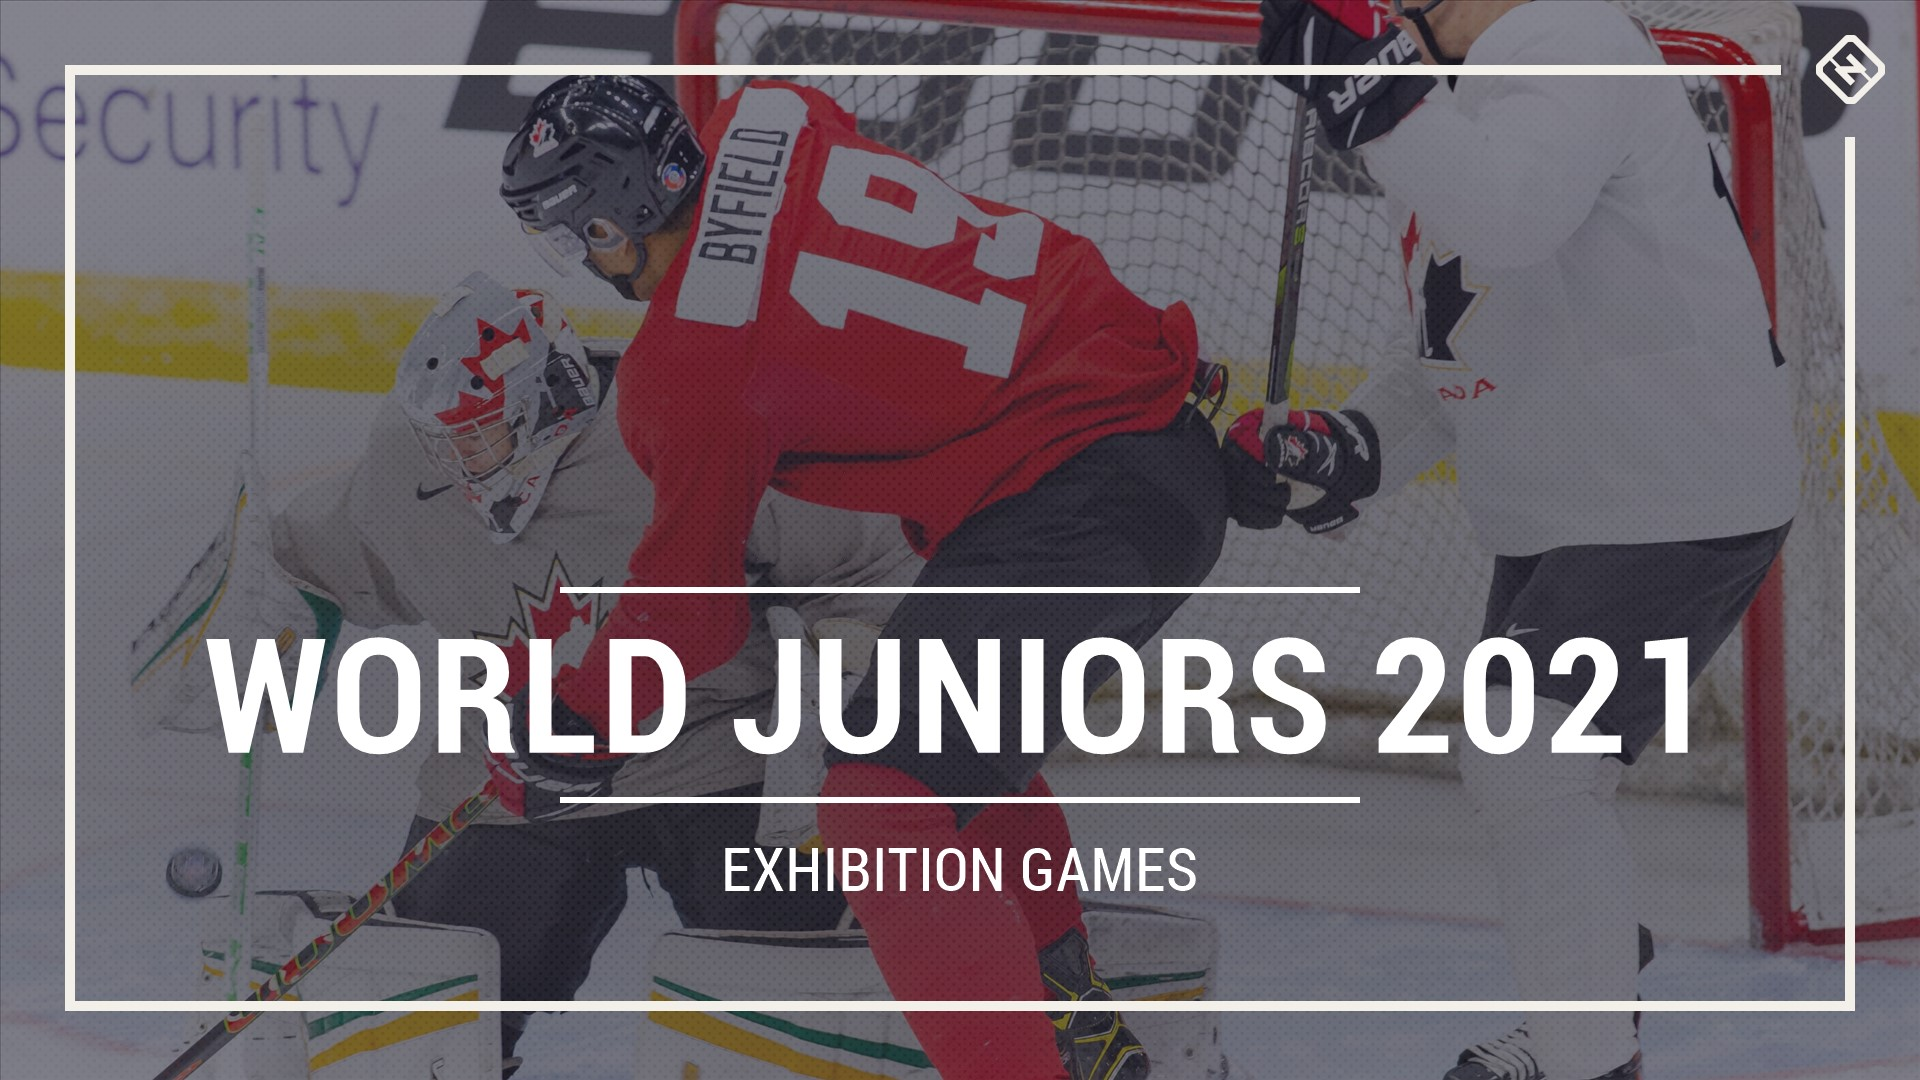 World Juniors 2021 exhibition games: Dates, times, TV channels for every pre-tournament meeting